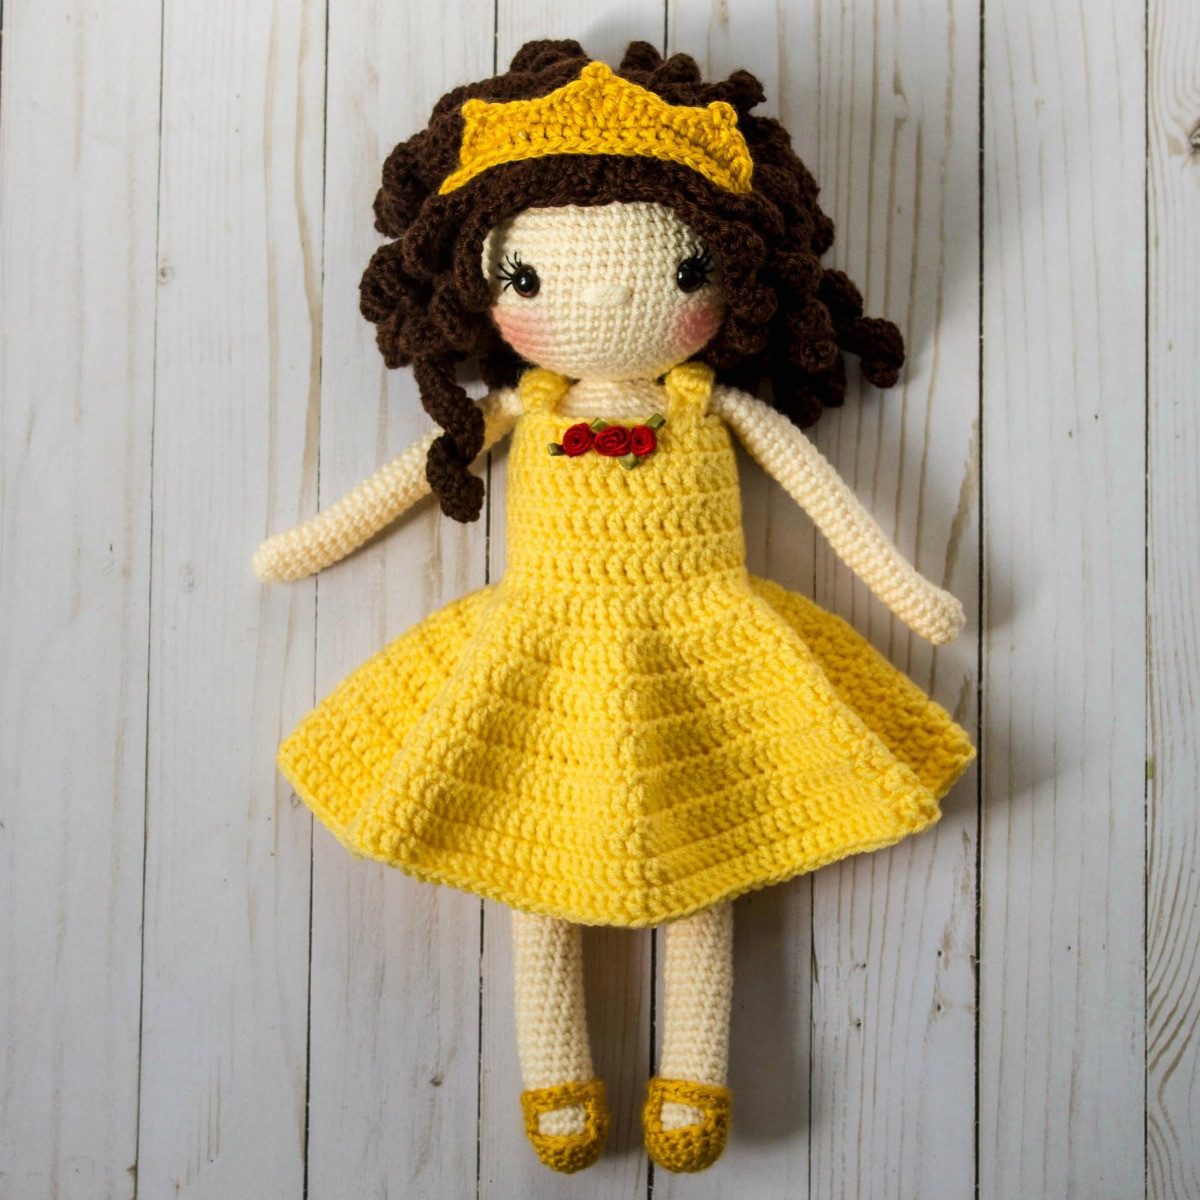 Doll Patterns Beautiful Free Crochet Doll Pattern the Friendly sophie Of Doll Patterns Best Of Gingermelon Dolls My Felt Doll Knitted Outfit Patterns